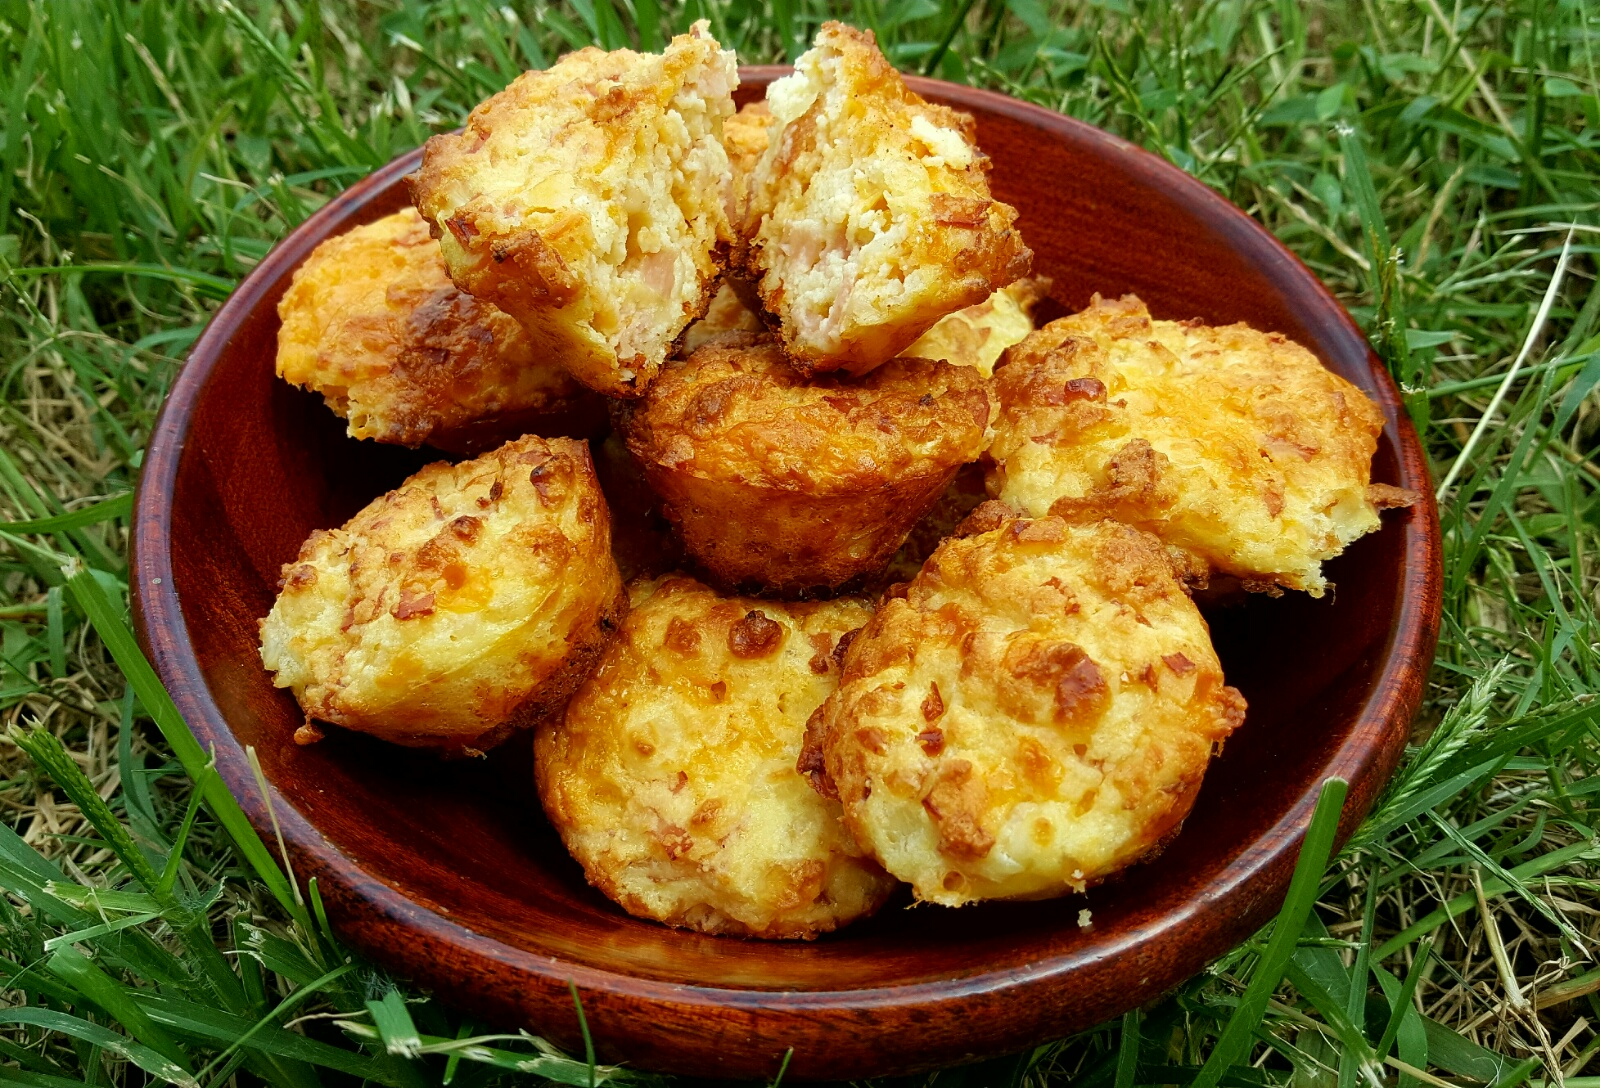 Wondrous A Magical Low Carb Savory Cottage Cheese Muffin Beyondpws Com Download Free Architecture Designs Scobabritishbridgeorg